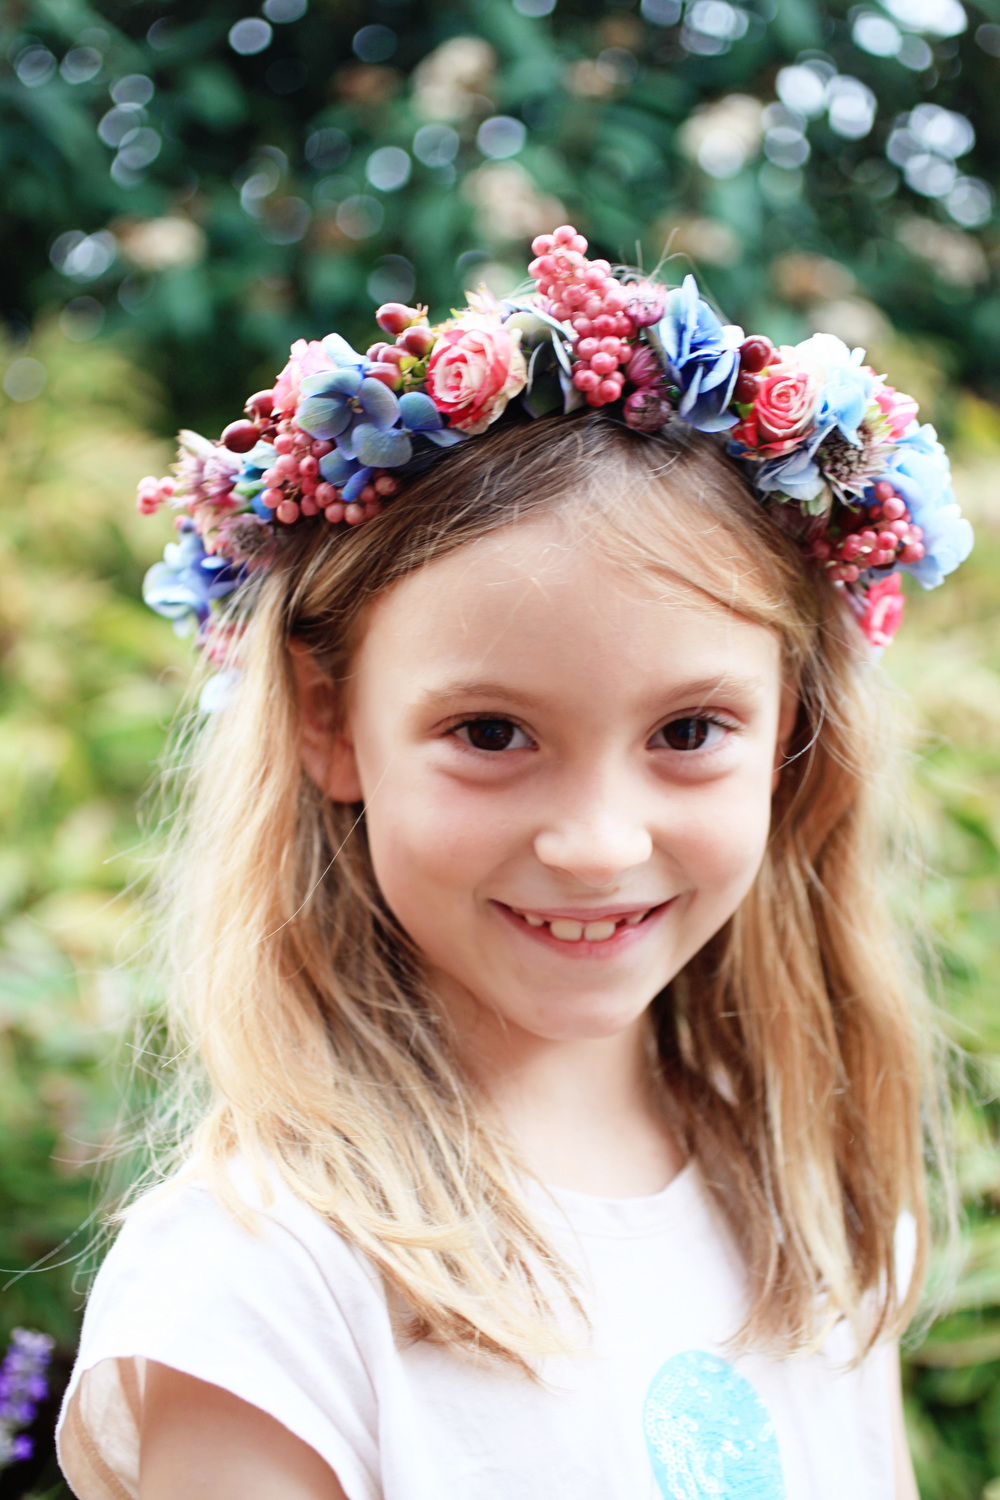 Makelight imagine how excited my little girl was this morning when she came downstairs to find a floral crown for her to wear before school izmirmasajfo Gallery